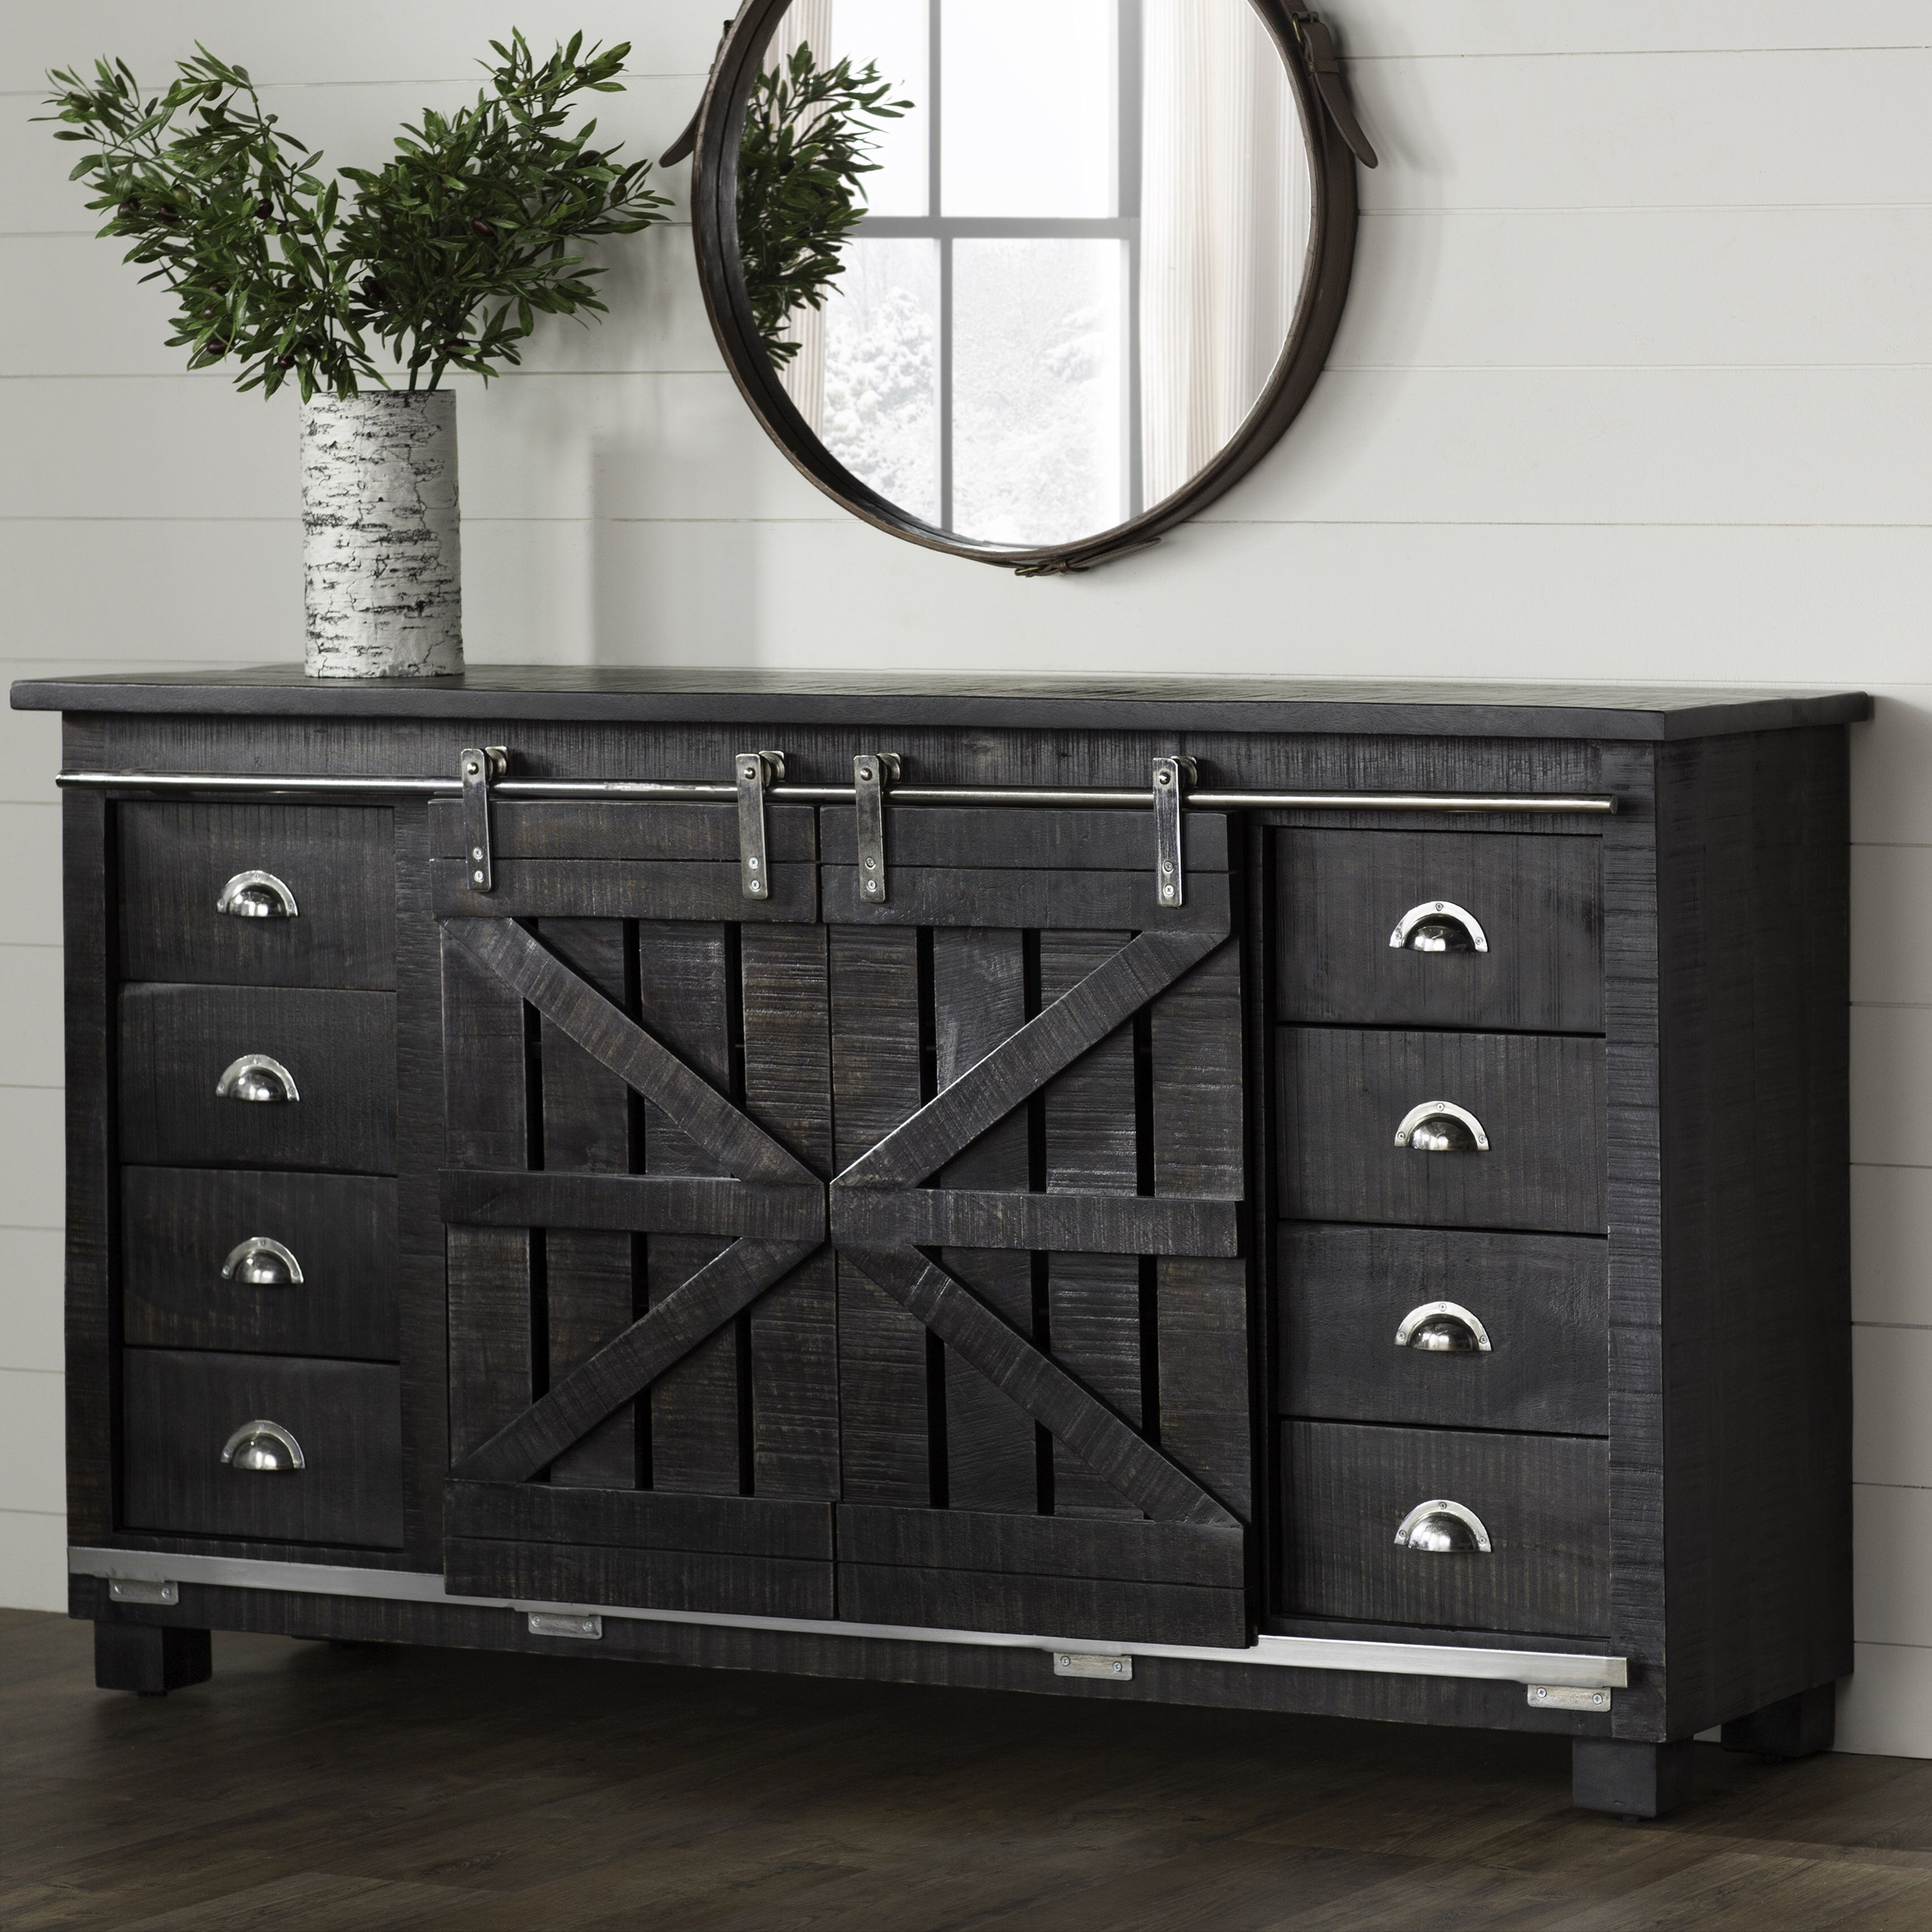 Deana Credenza | Dining Room In 2019 | Shabby Chic Furniture Pertaining To Amityville Sideboards (Gallery 30 of 30)